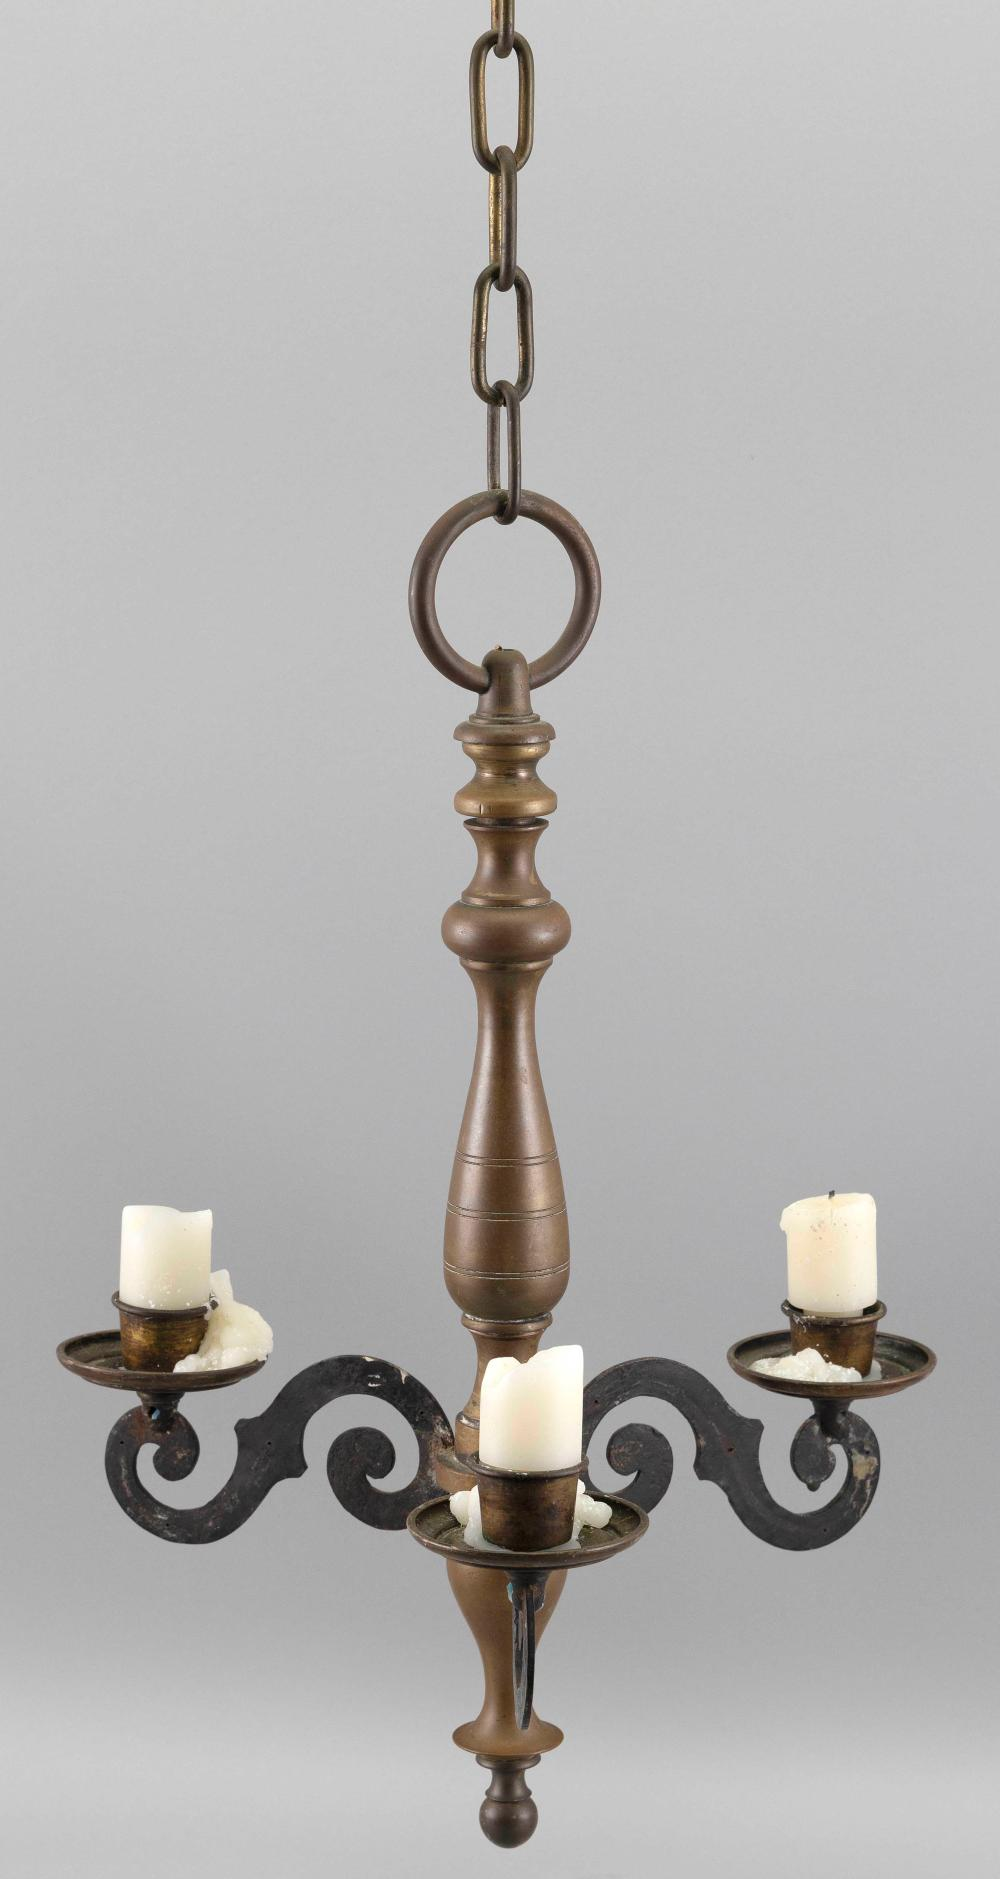 TWO HANGING CANDLE LIGHTING DEVICES 20th Century Tallest height 20.25